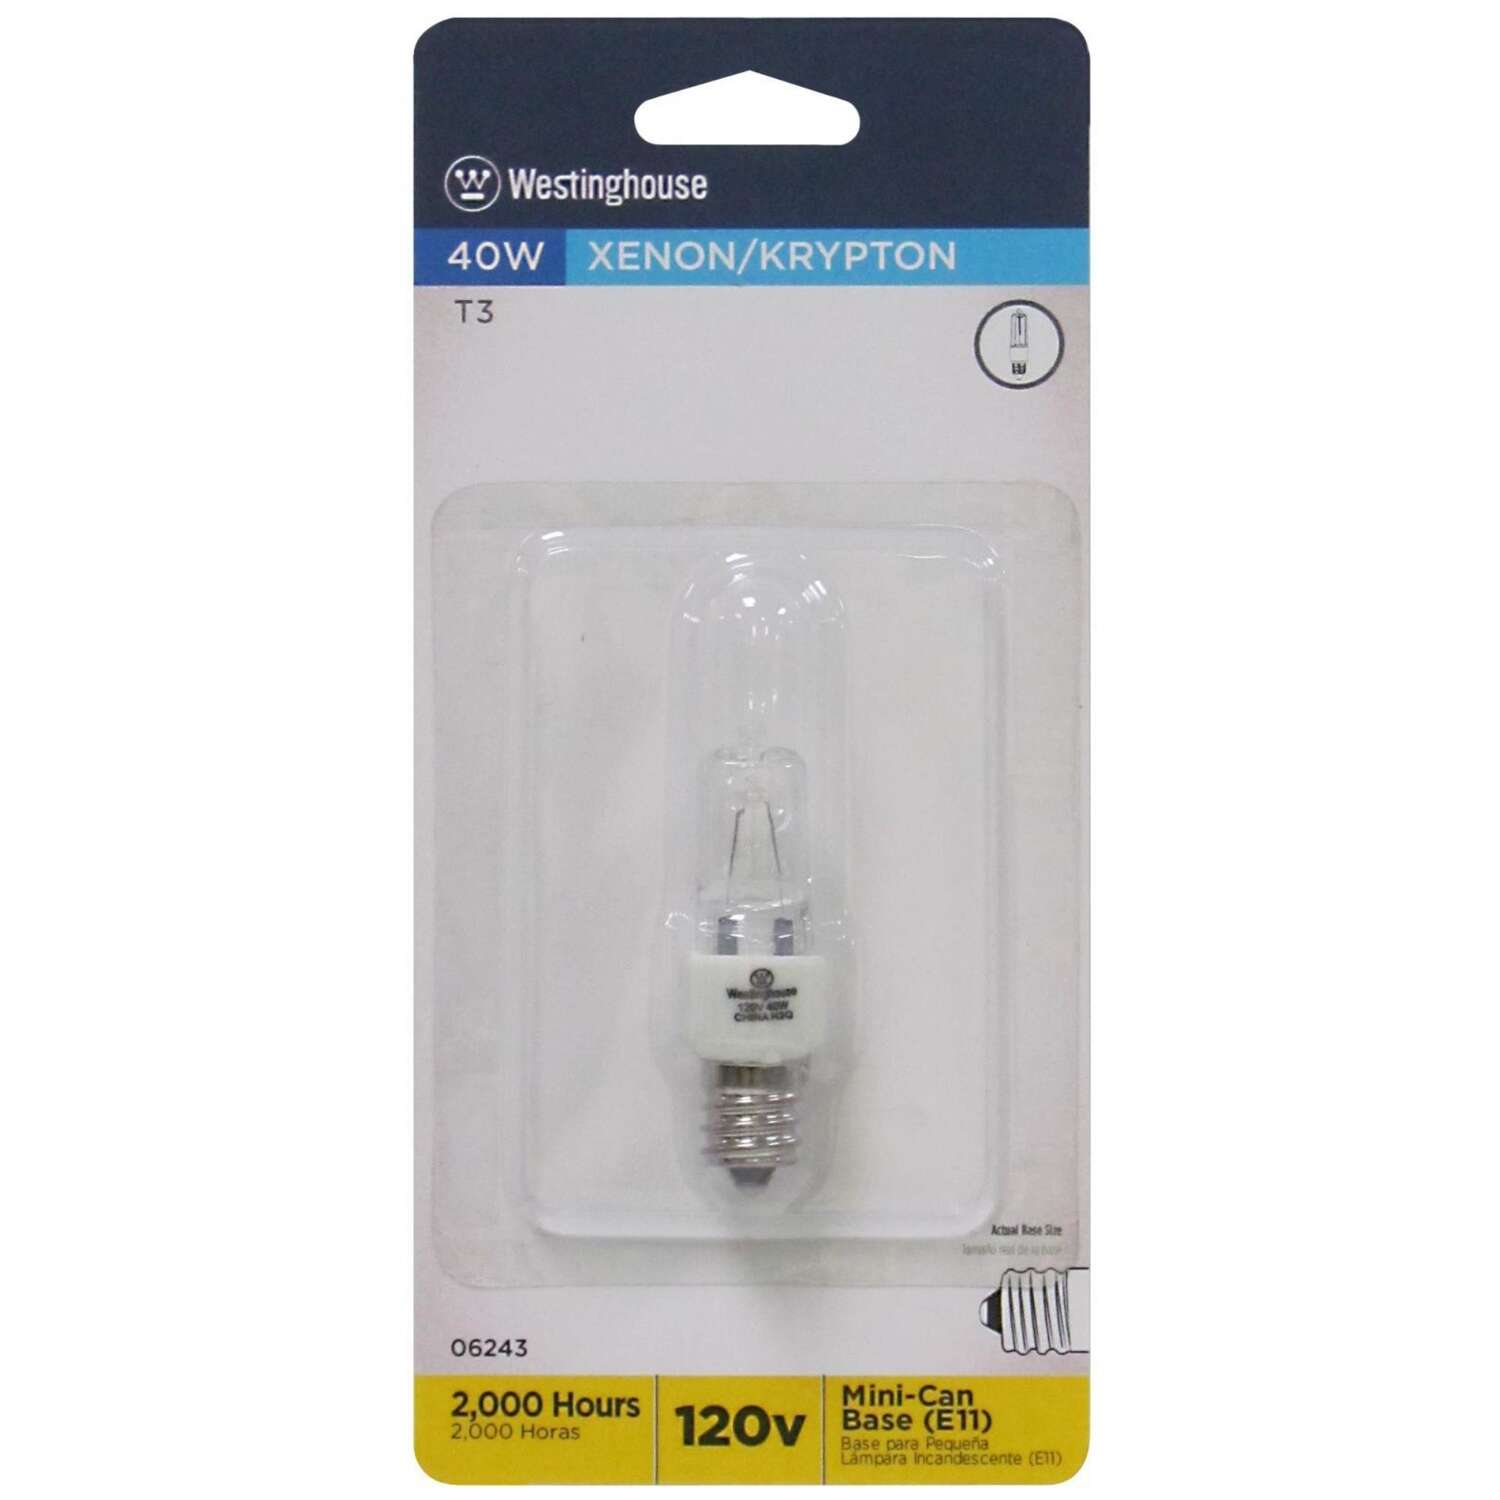 Westinghouse  40 watts T3  Incandescent Bulb  560 lumens White  1 pk Specialty